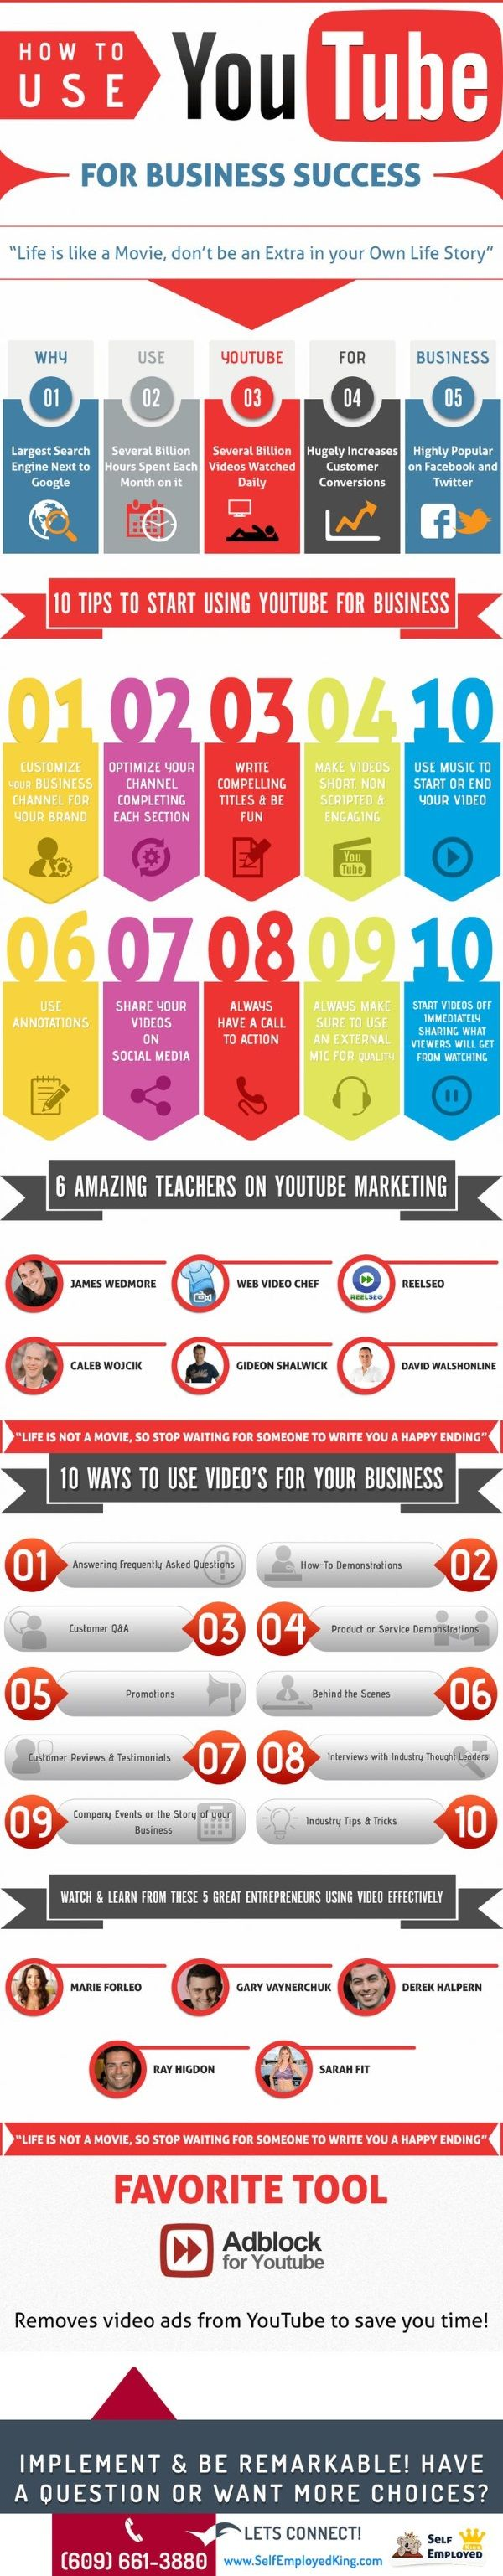 Video Marketing - How to use Youtube - Social With It